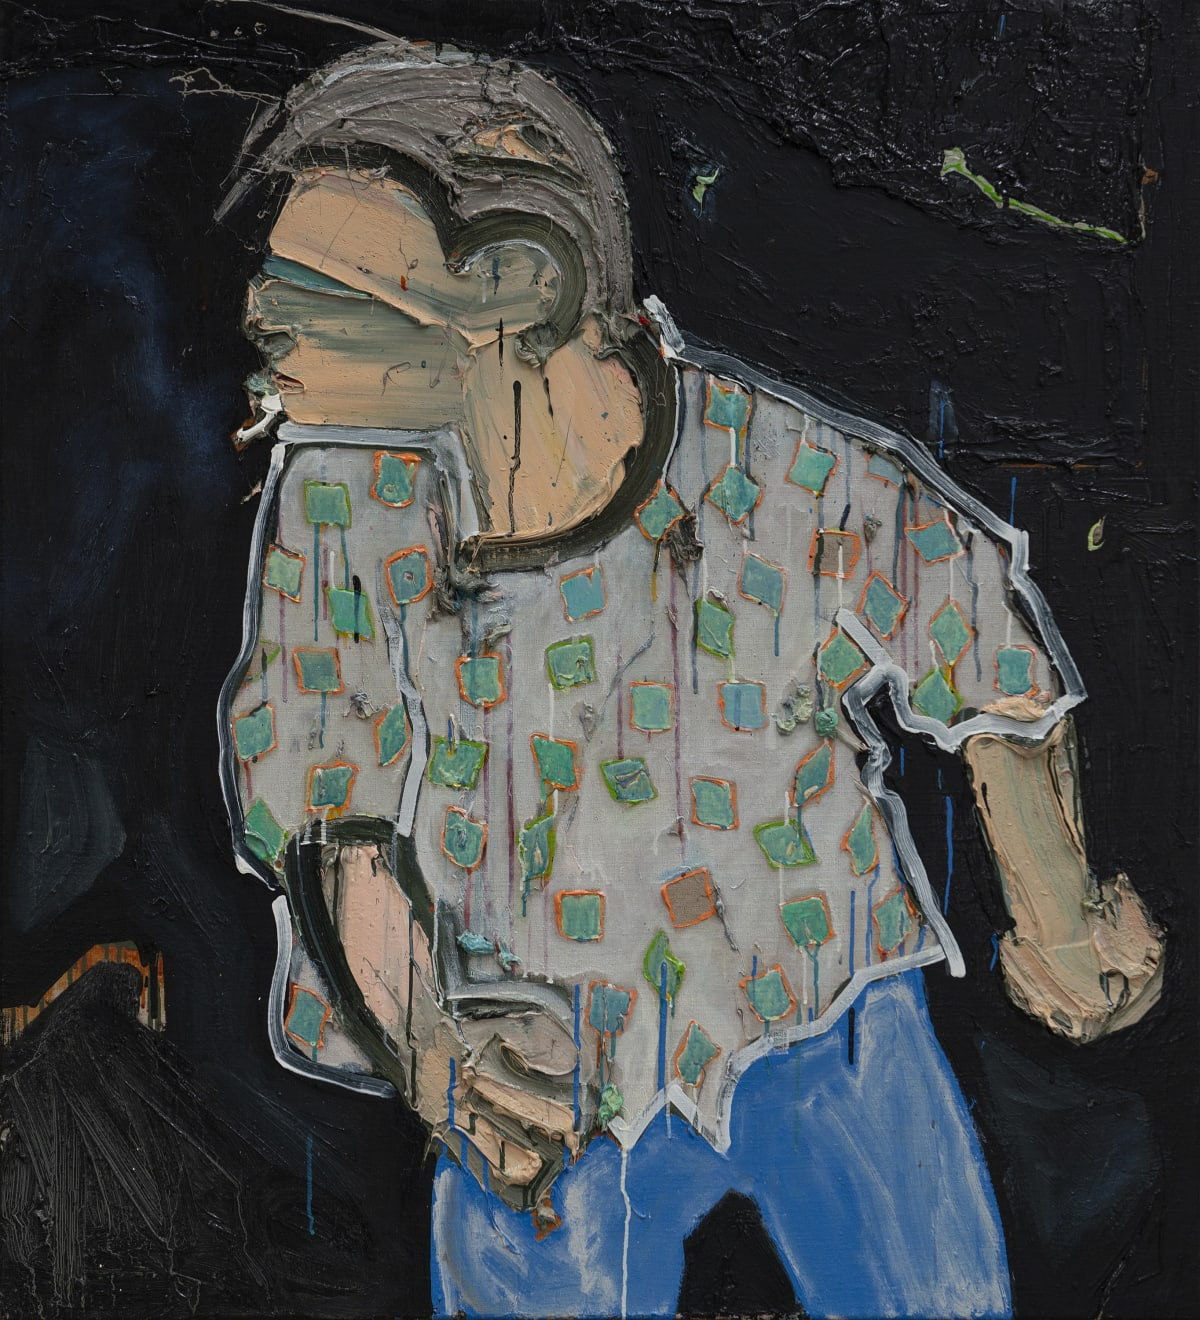 Toby Raine, Mel Gibson Getting Drunk and Blaming it on the Jews. Painting Number 5 (checked shirt, cigarette), 2018